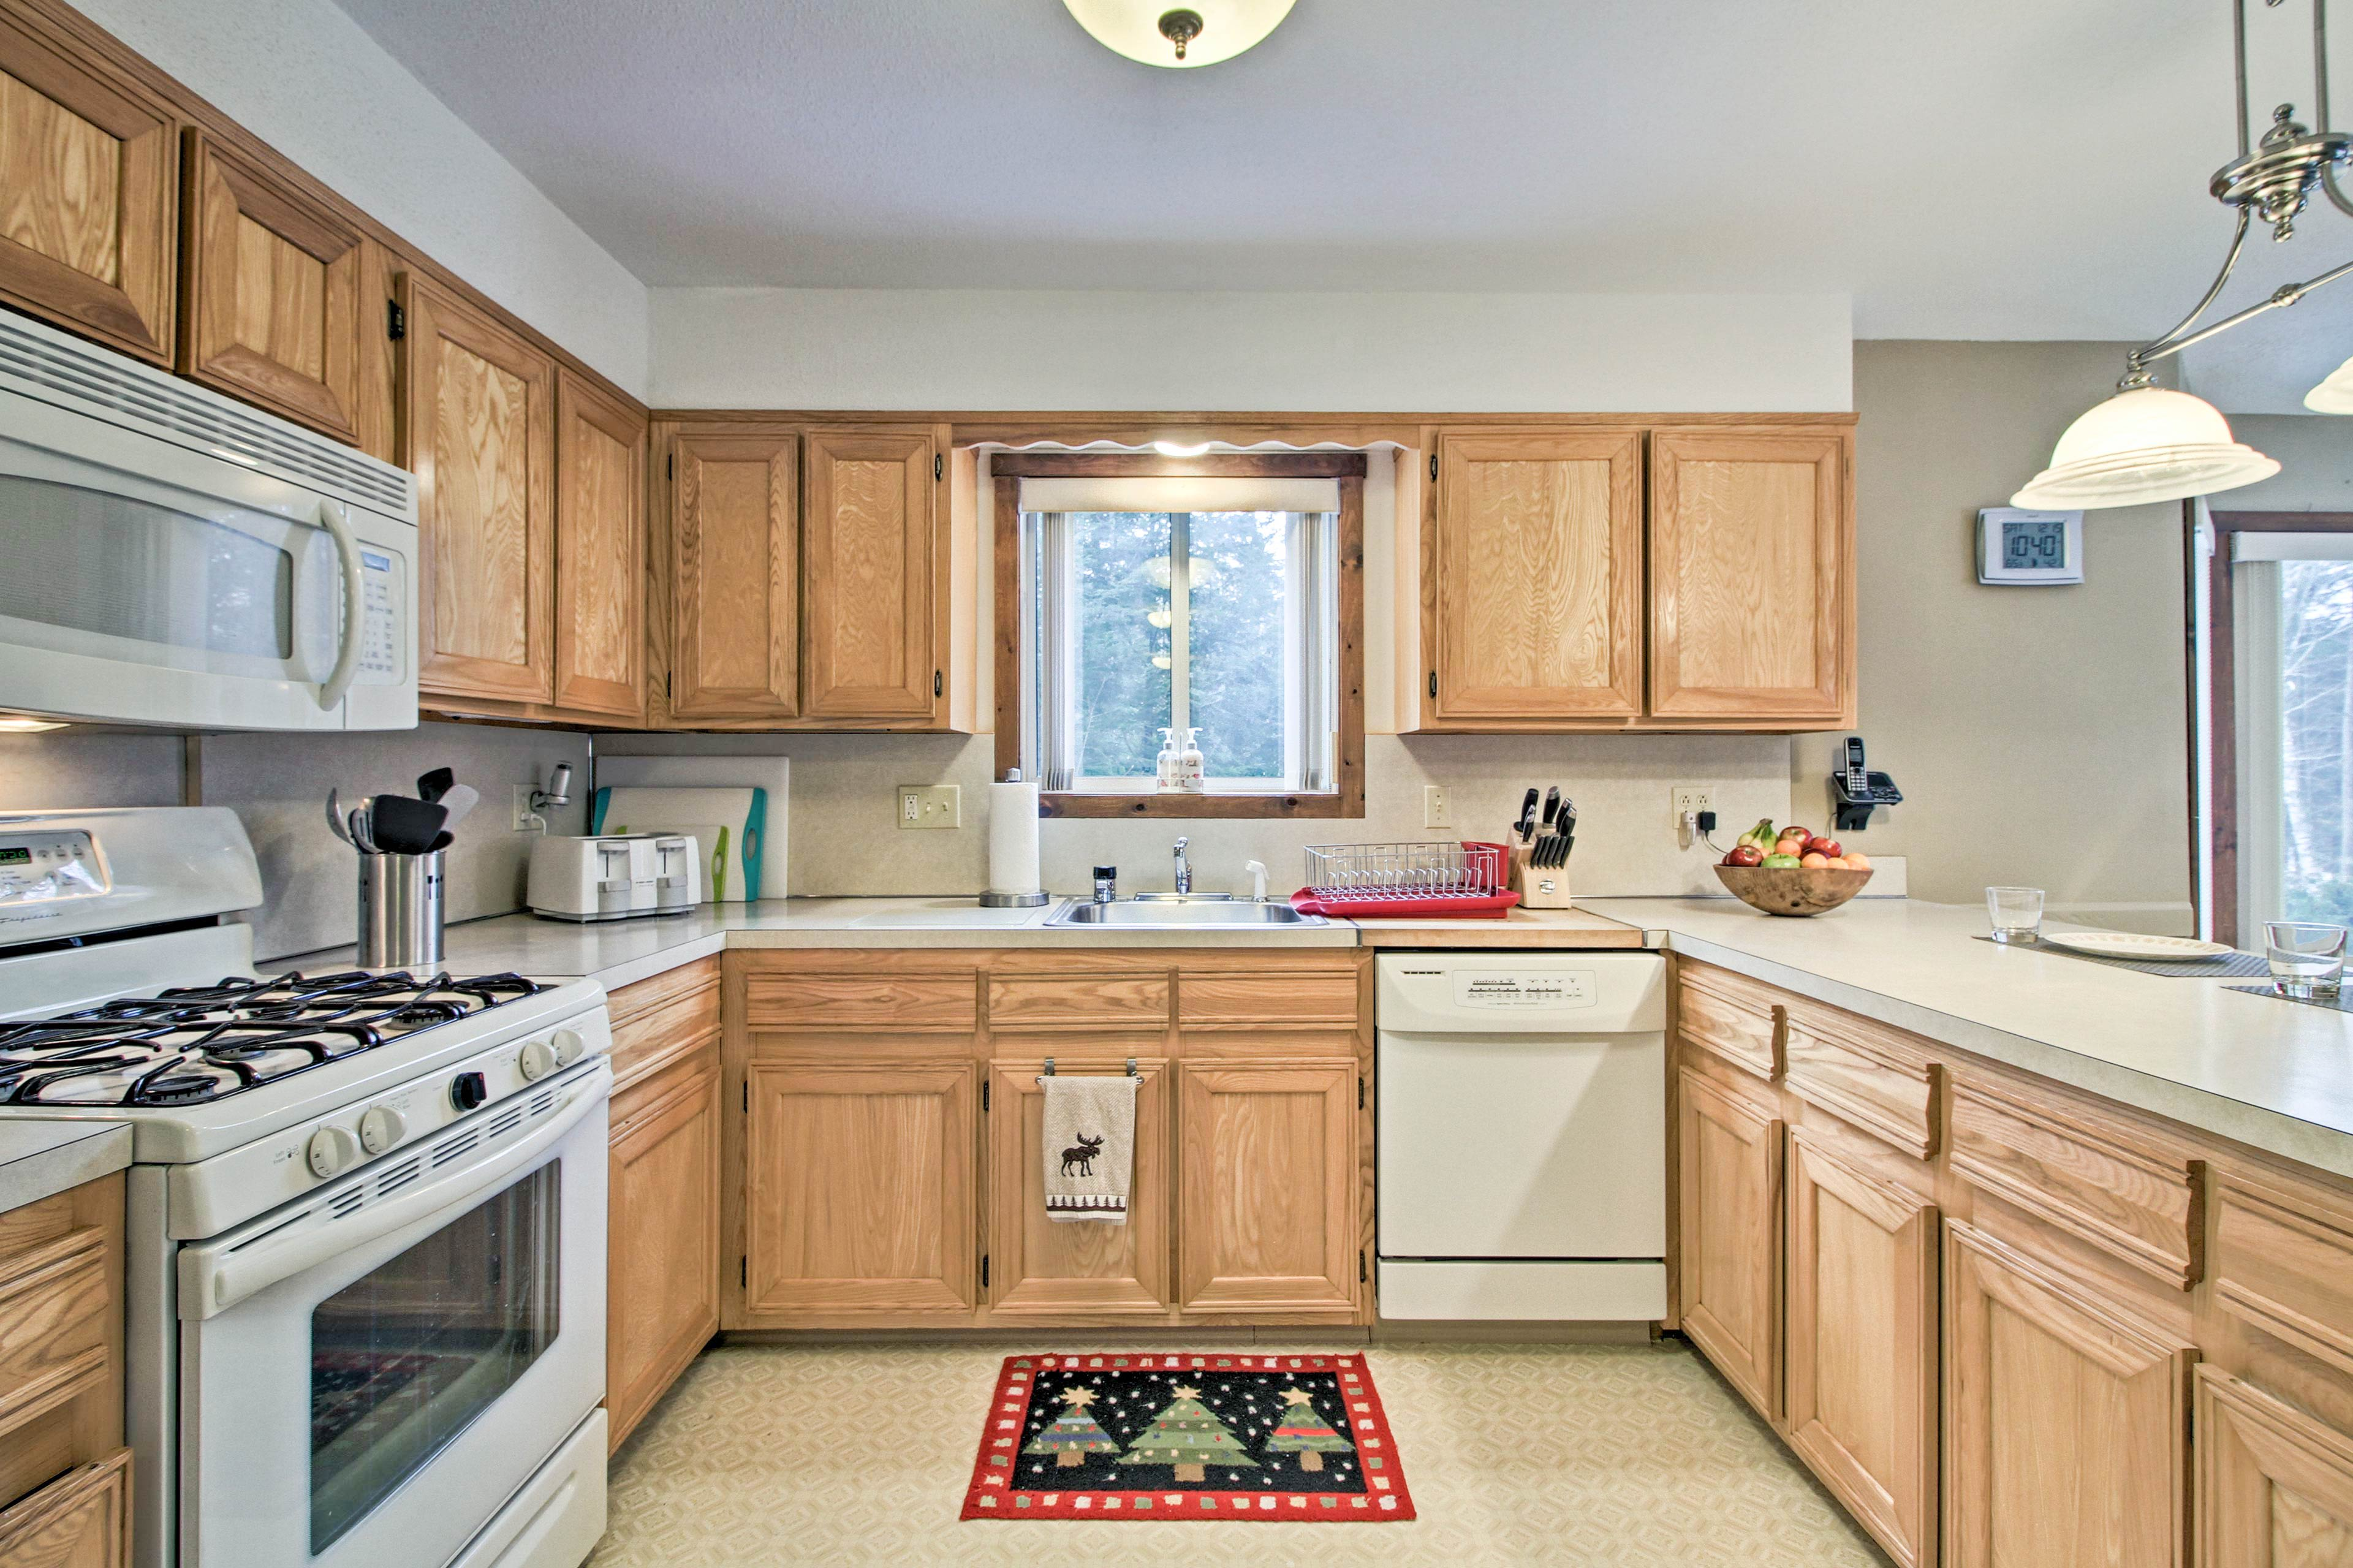 The fully equipped kitchen makes preparing home-cooked meals a breeze!